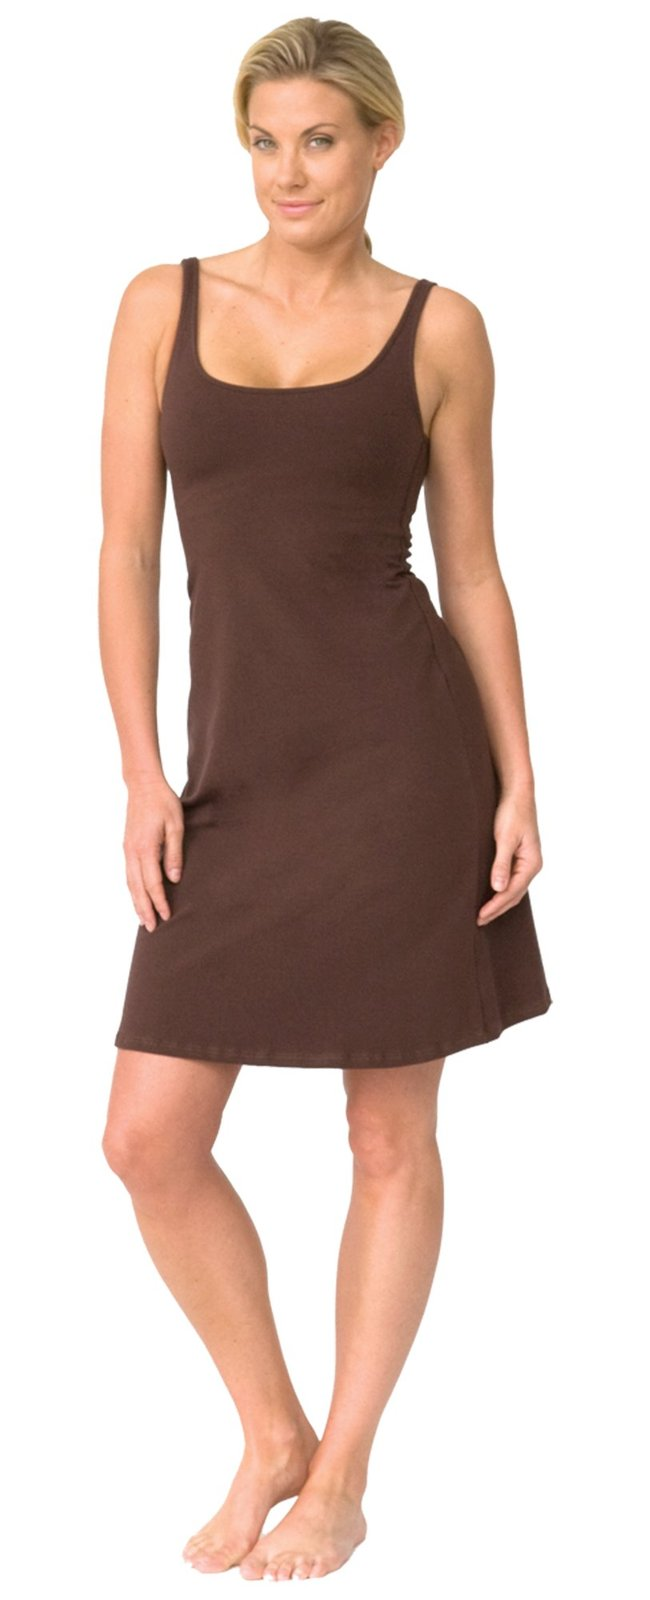 majamas-cozy-nursing-dress-cocoa.jpg